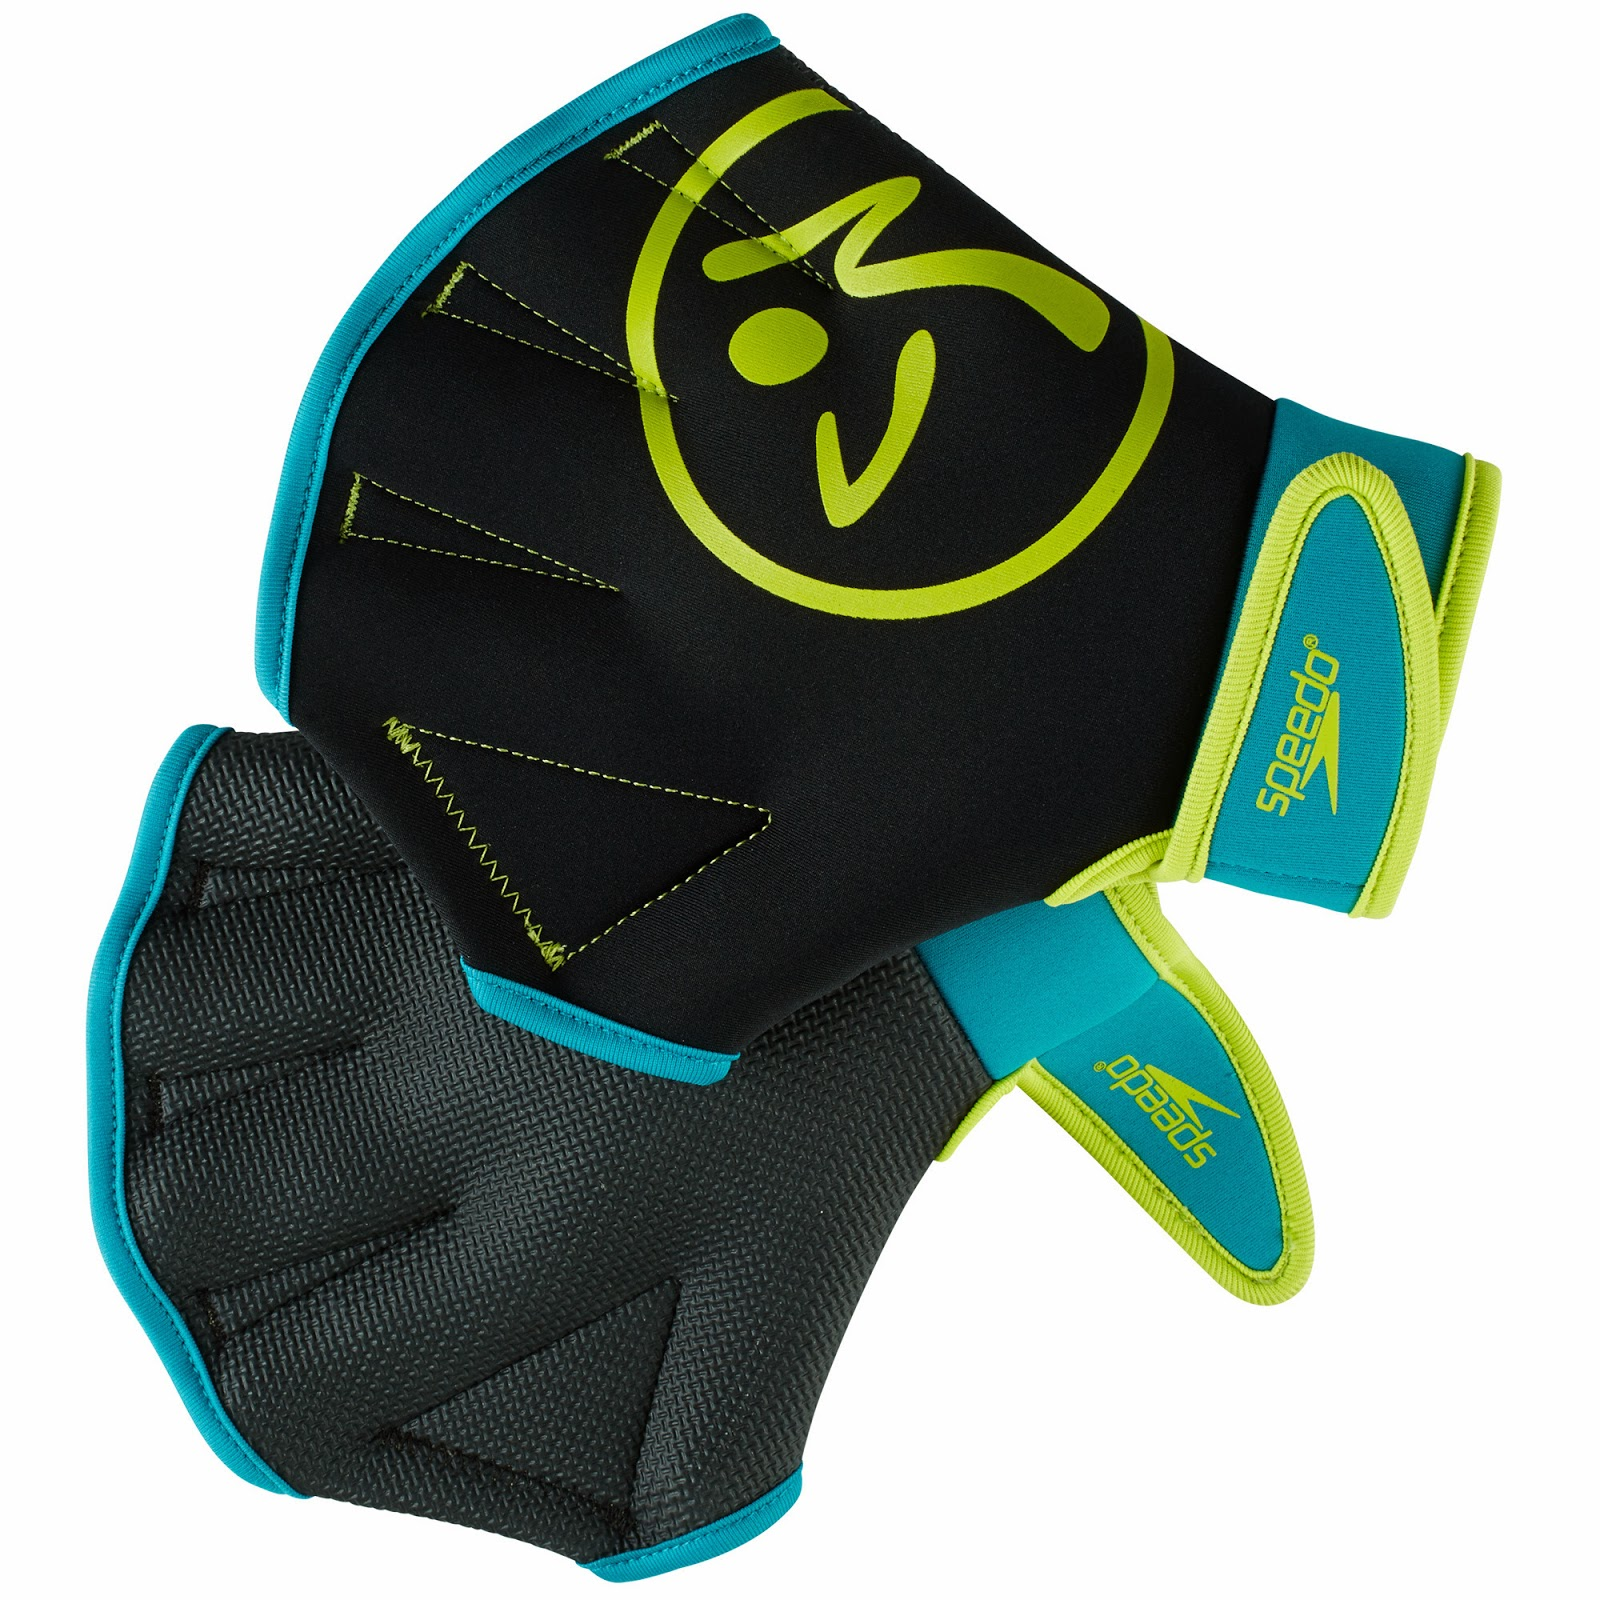 http://www.zumba.com/en-US/store-zin/US/product/this-must-be-gloves-aquatic-fitness-gloves?color=Black